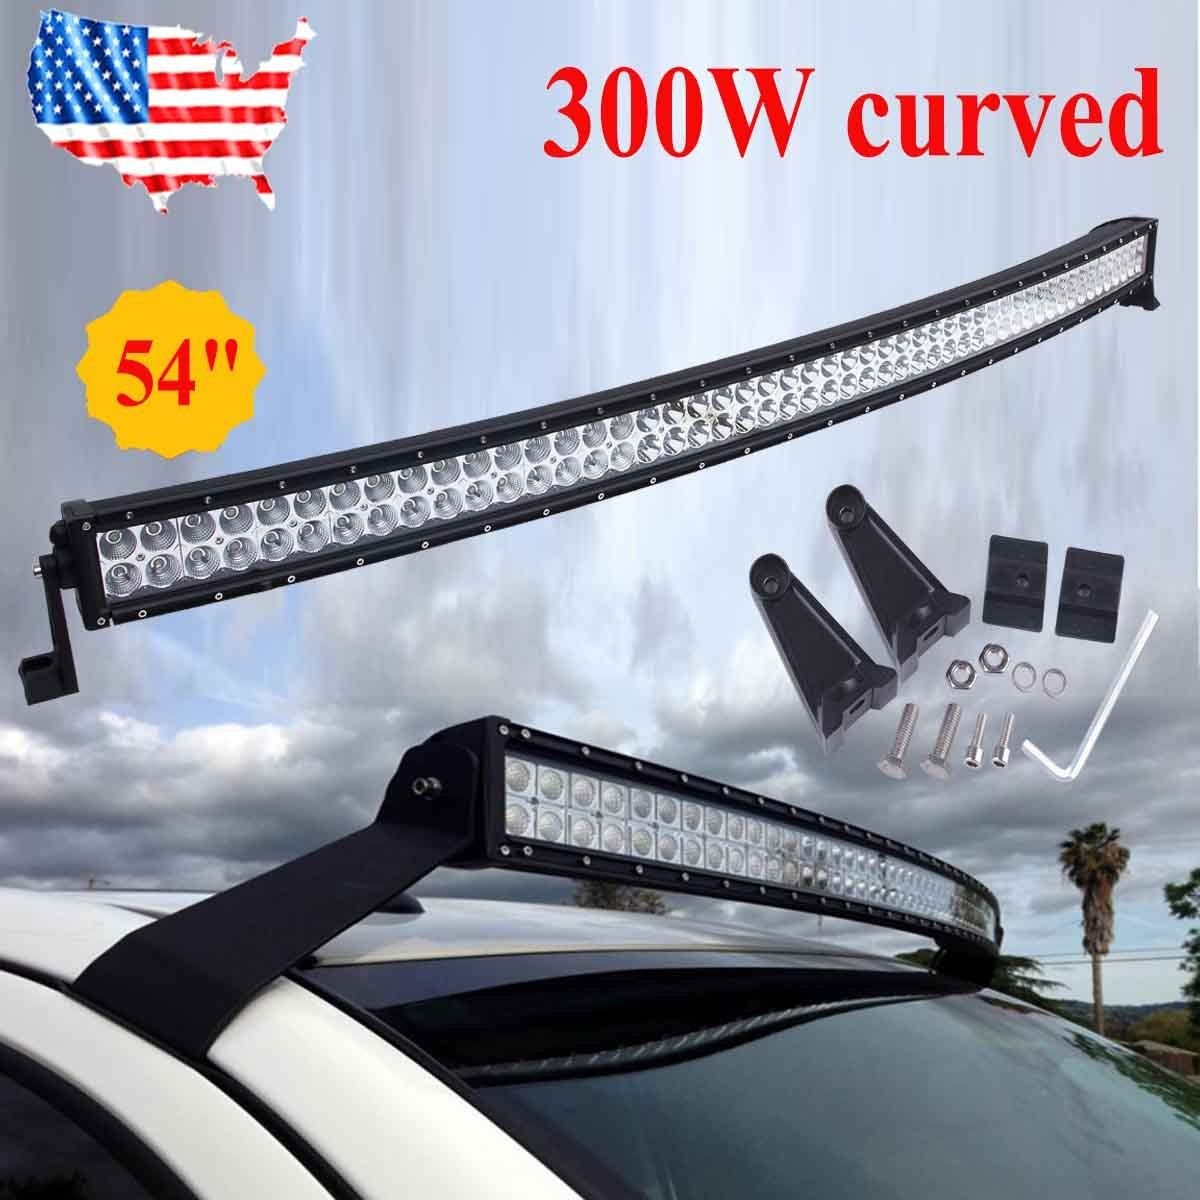 52inch 300w Led Curved Work Light Bar Flood Spot Combo Driving Offroad 4wd 312w by Napol Performance